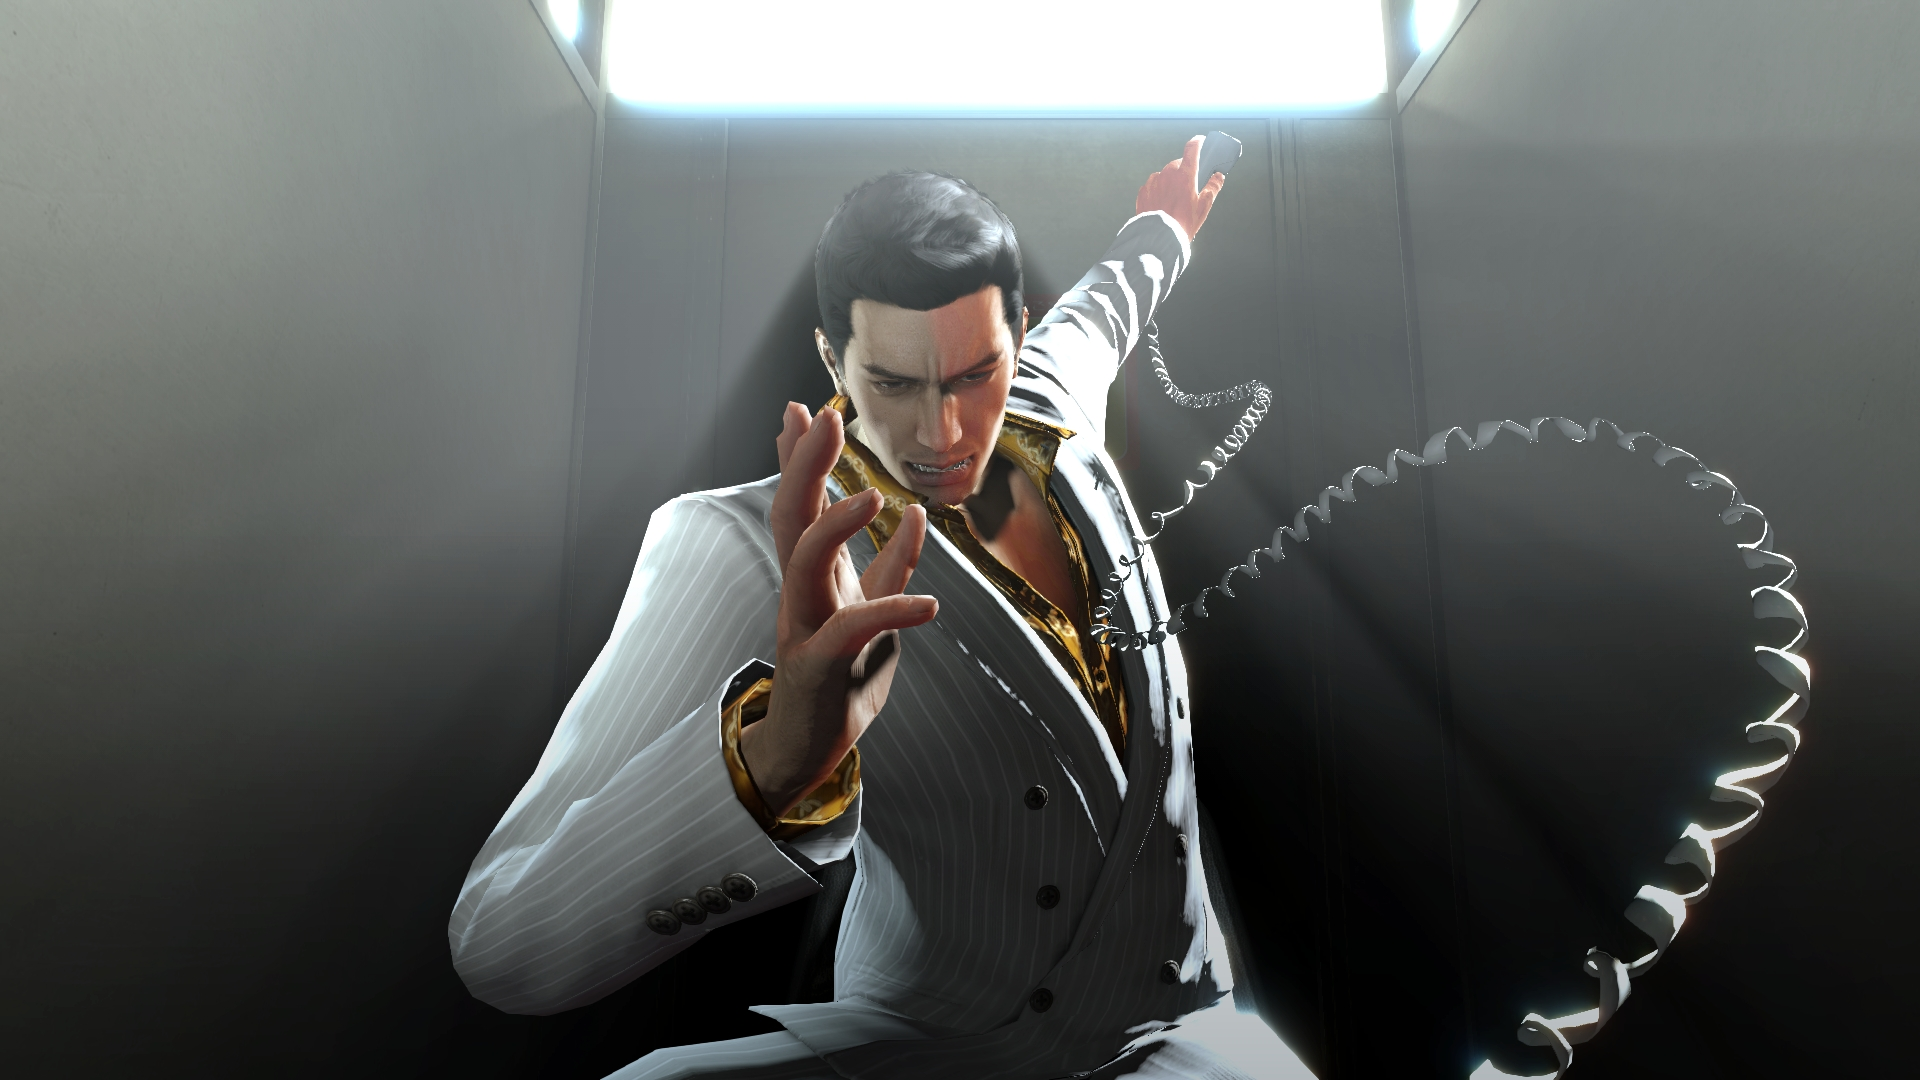 Yakuza 0 Release Date Announced For North America And Europe